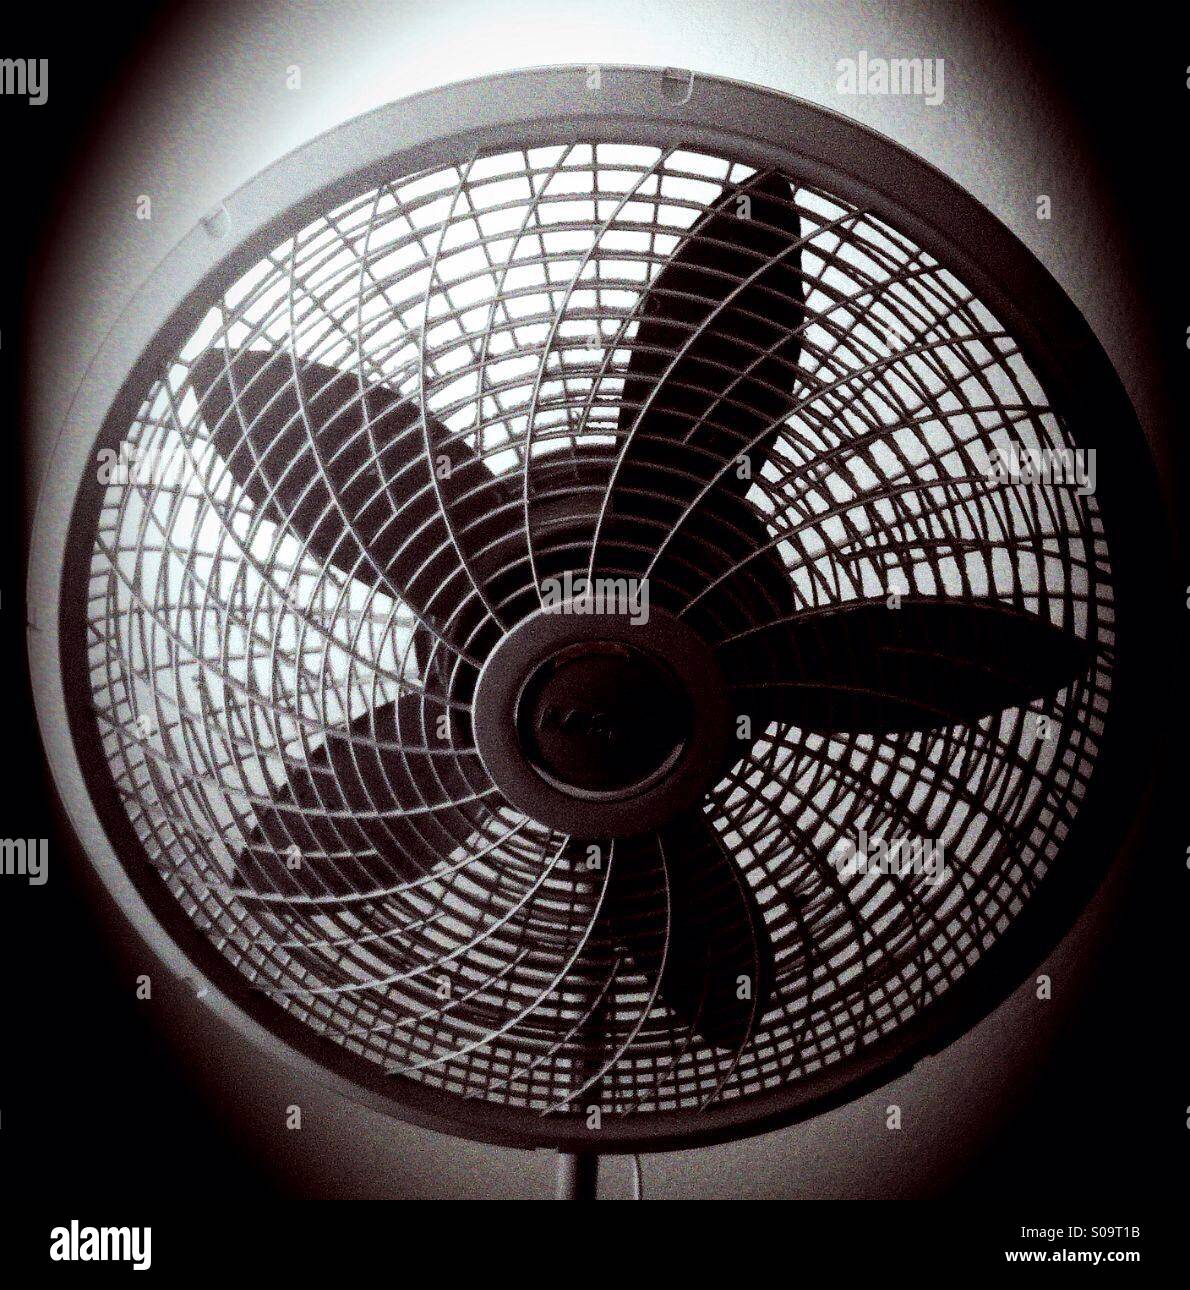 Photo of my fan that I edited:) - Stock Image